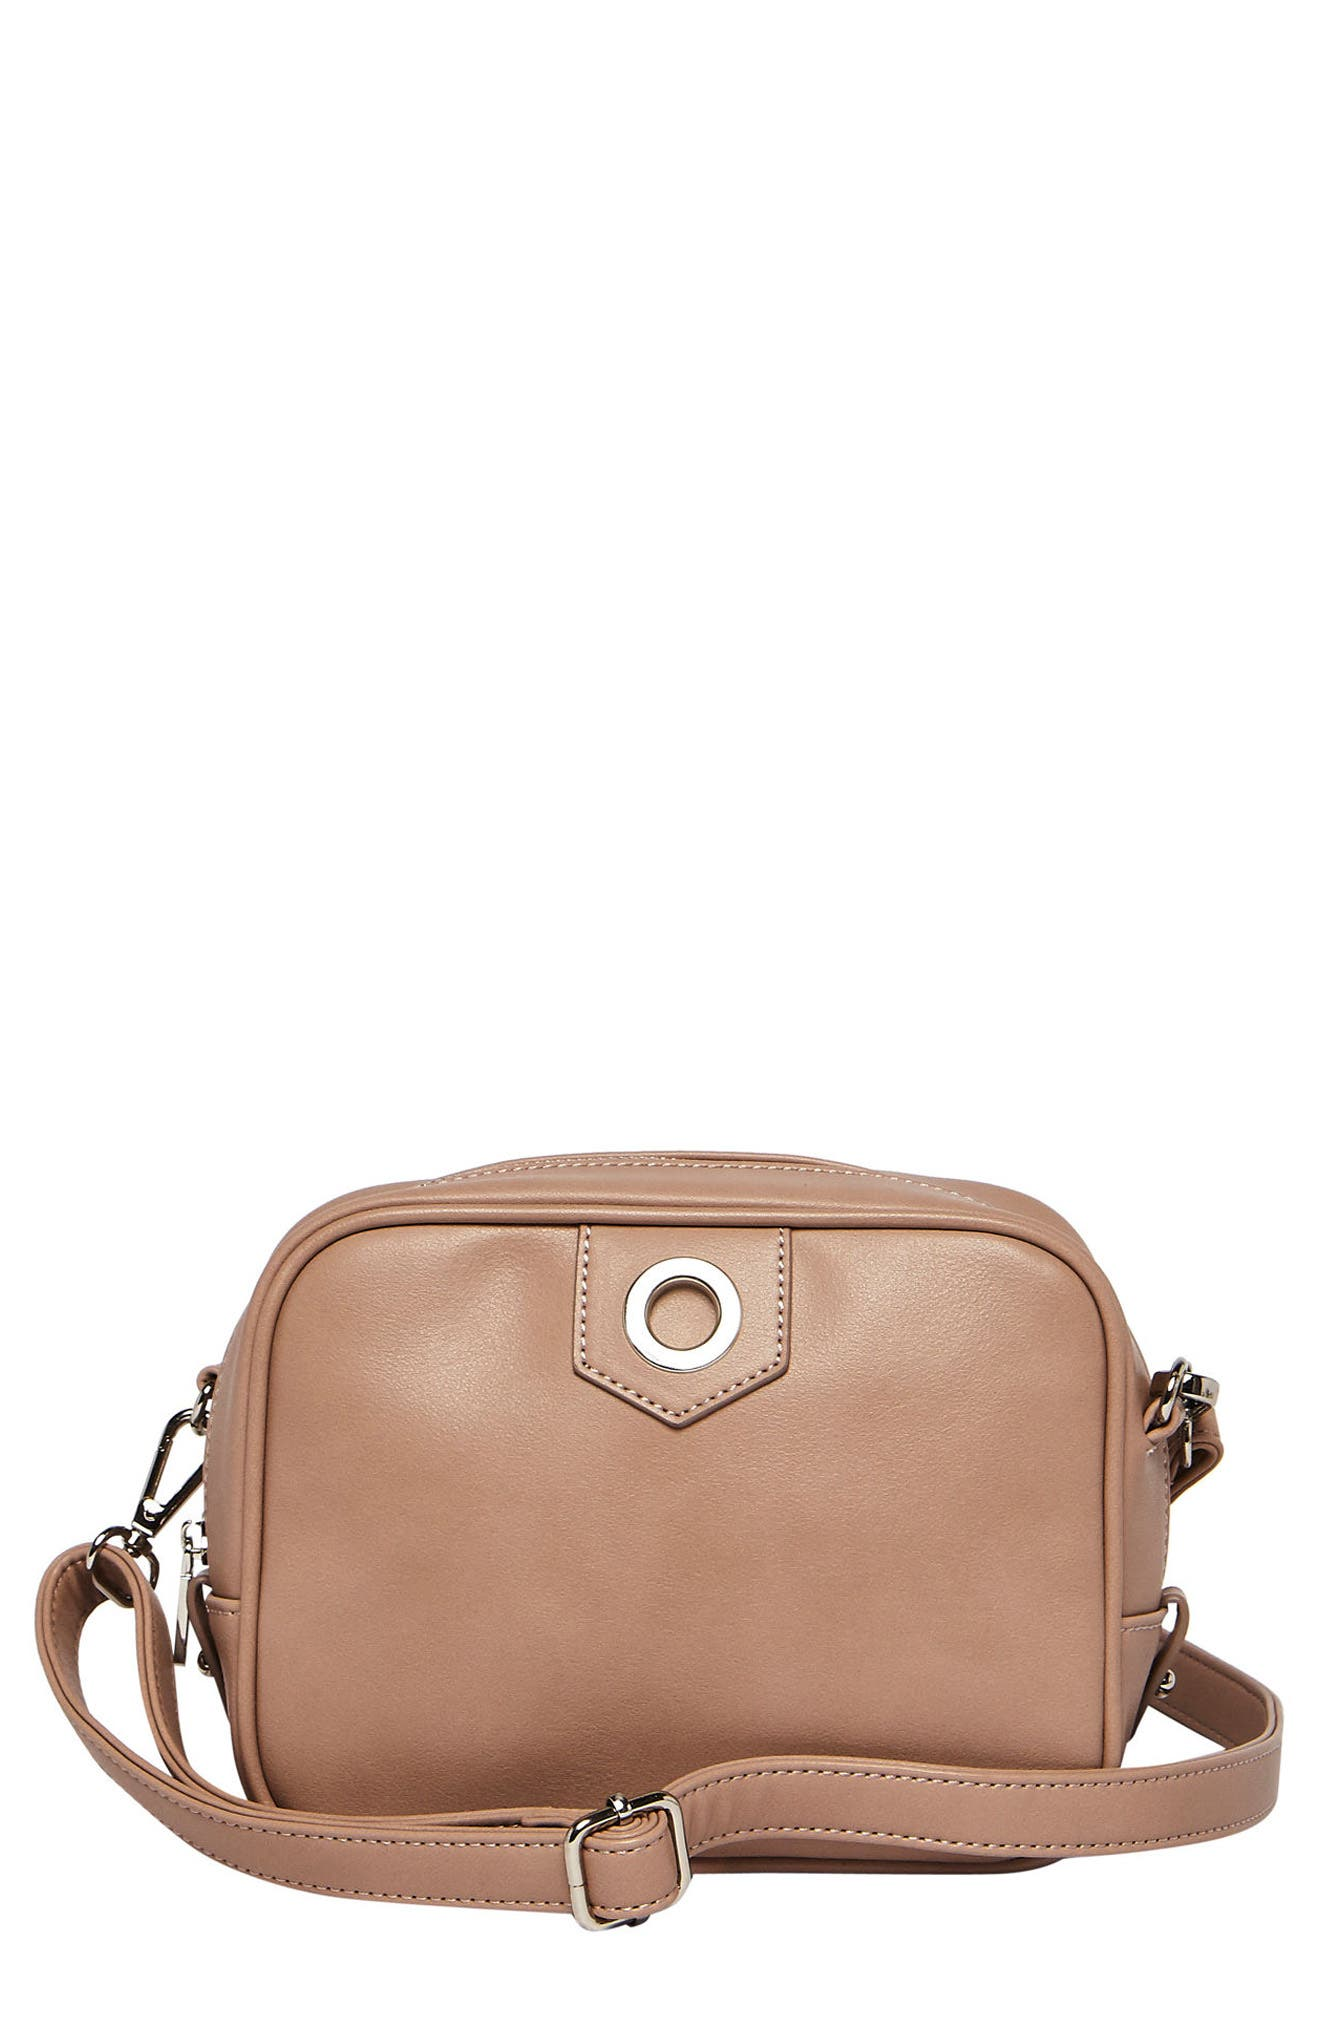 Dakota Vegan Leather Crossbody Bag,                         Main,                         color,